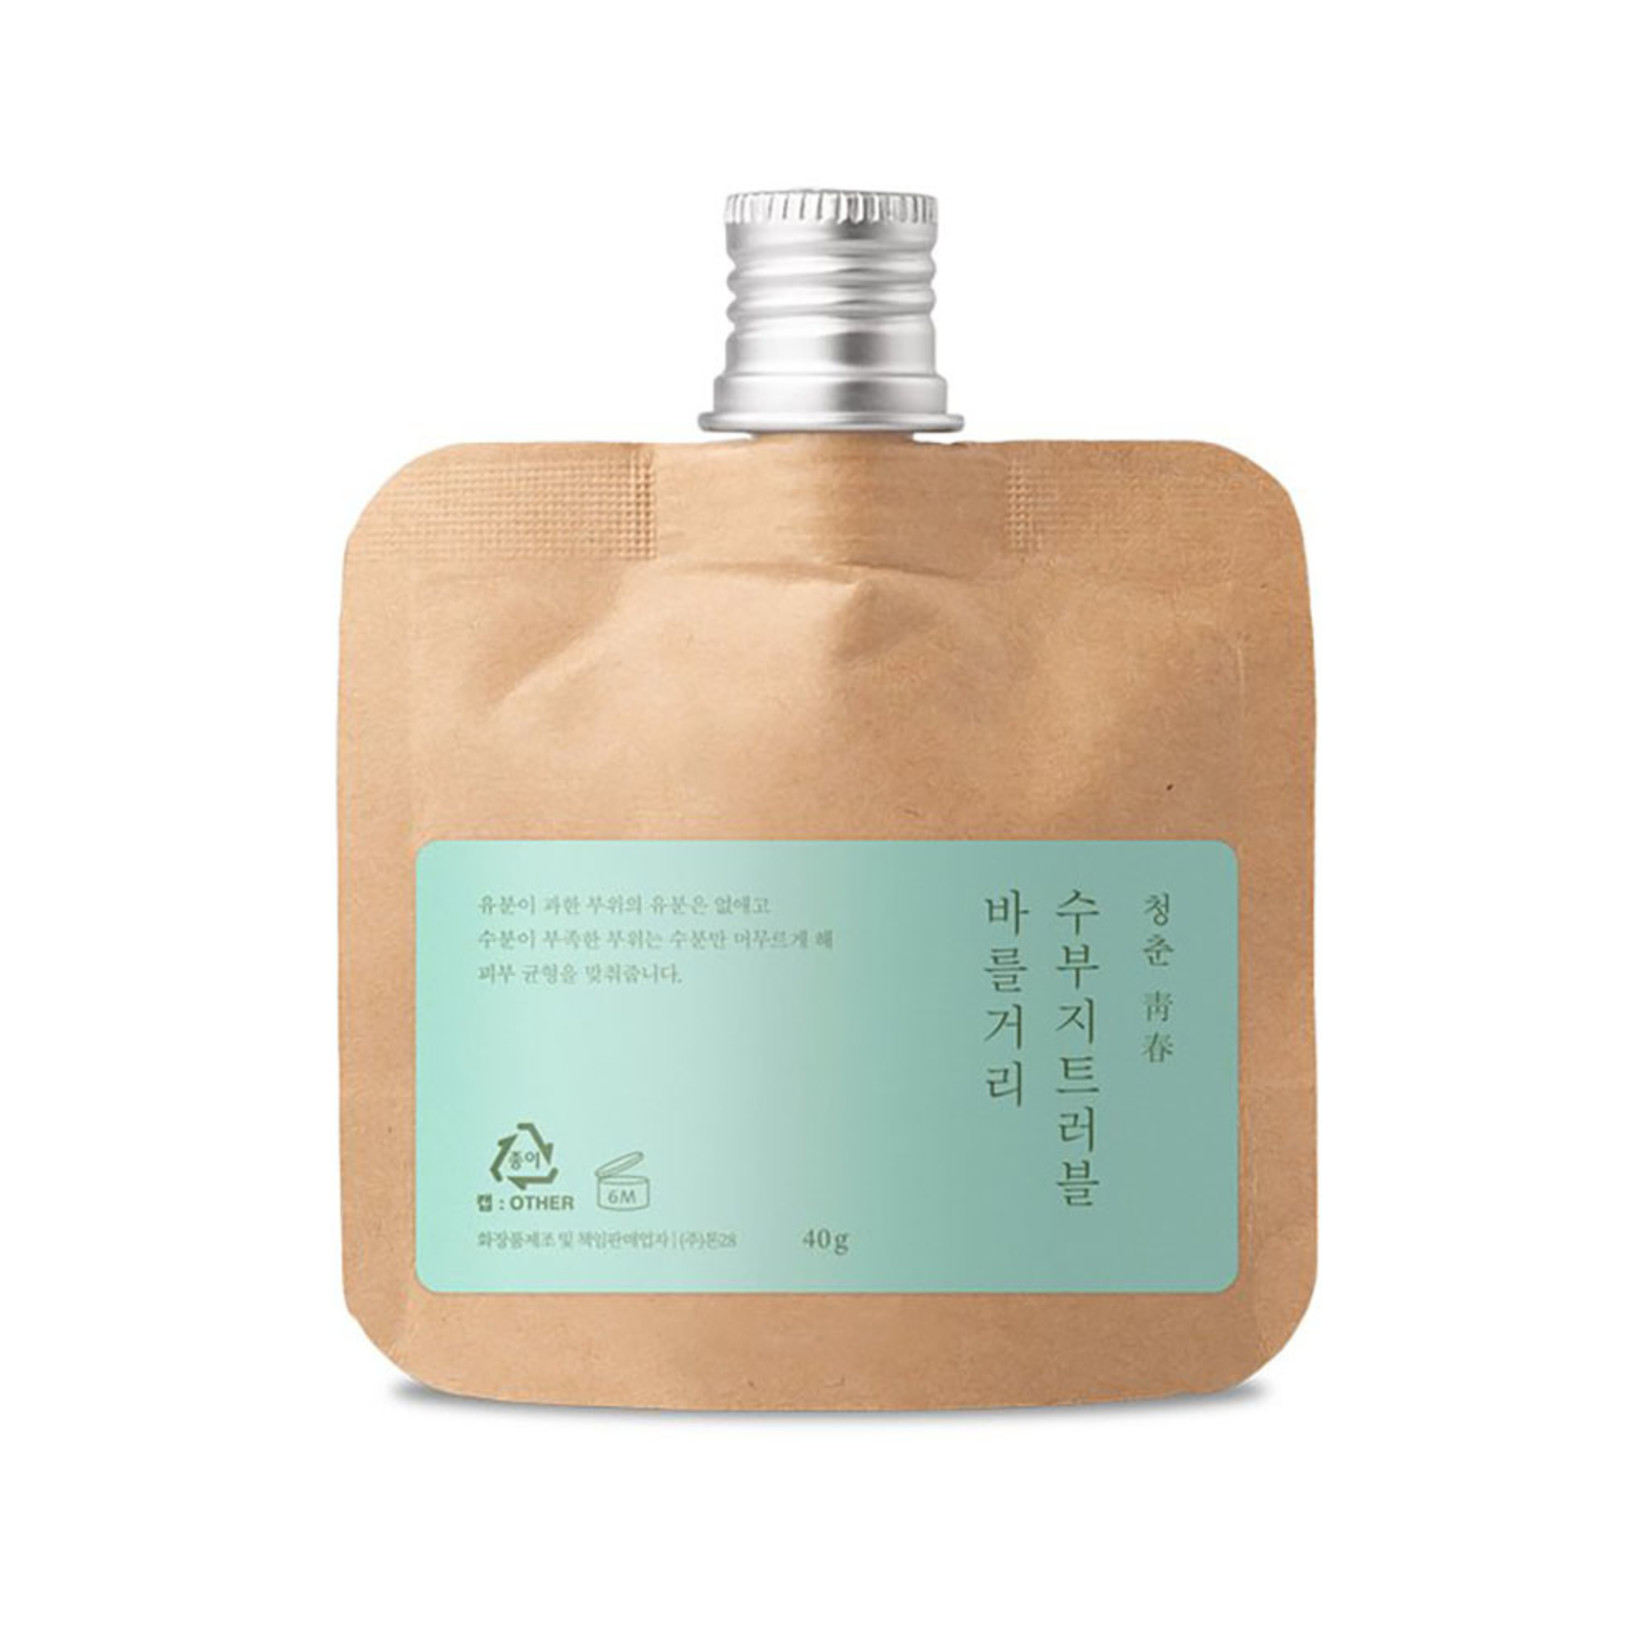 Toun28 Trouble Care for Dehydrated-Oily Skin